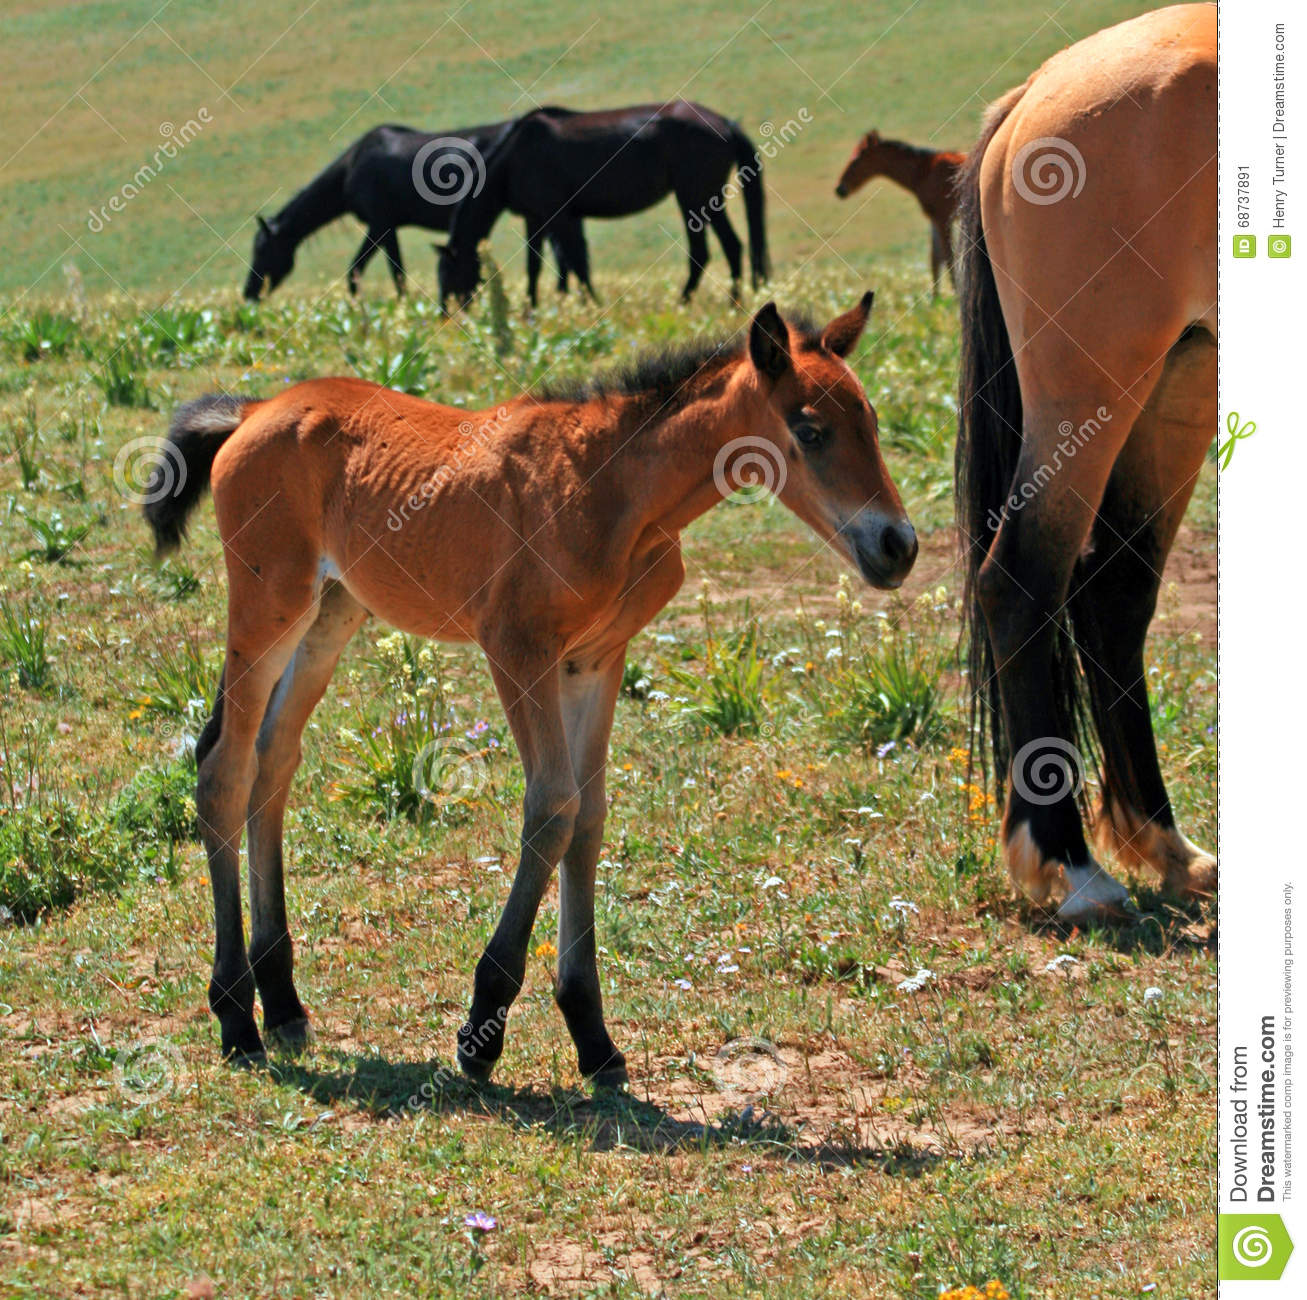 Baby Colt Mustang With Mother Mare Wild Horse Stock Photo 68737891 Megapixl